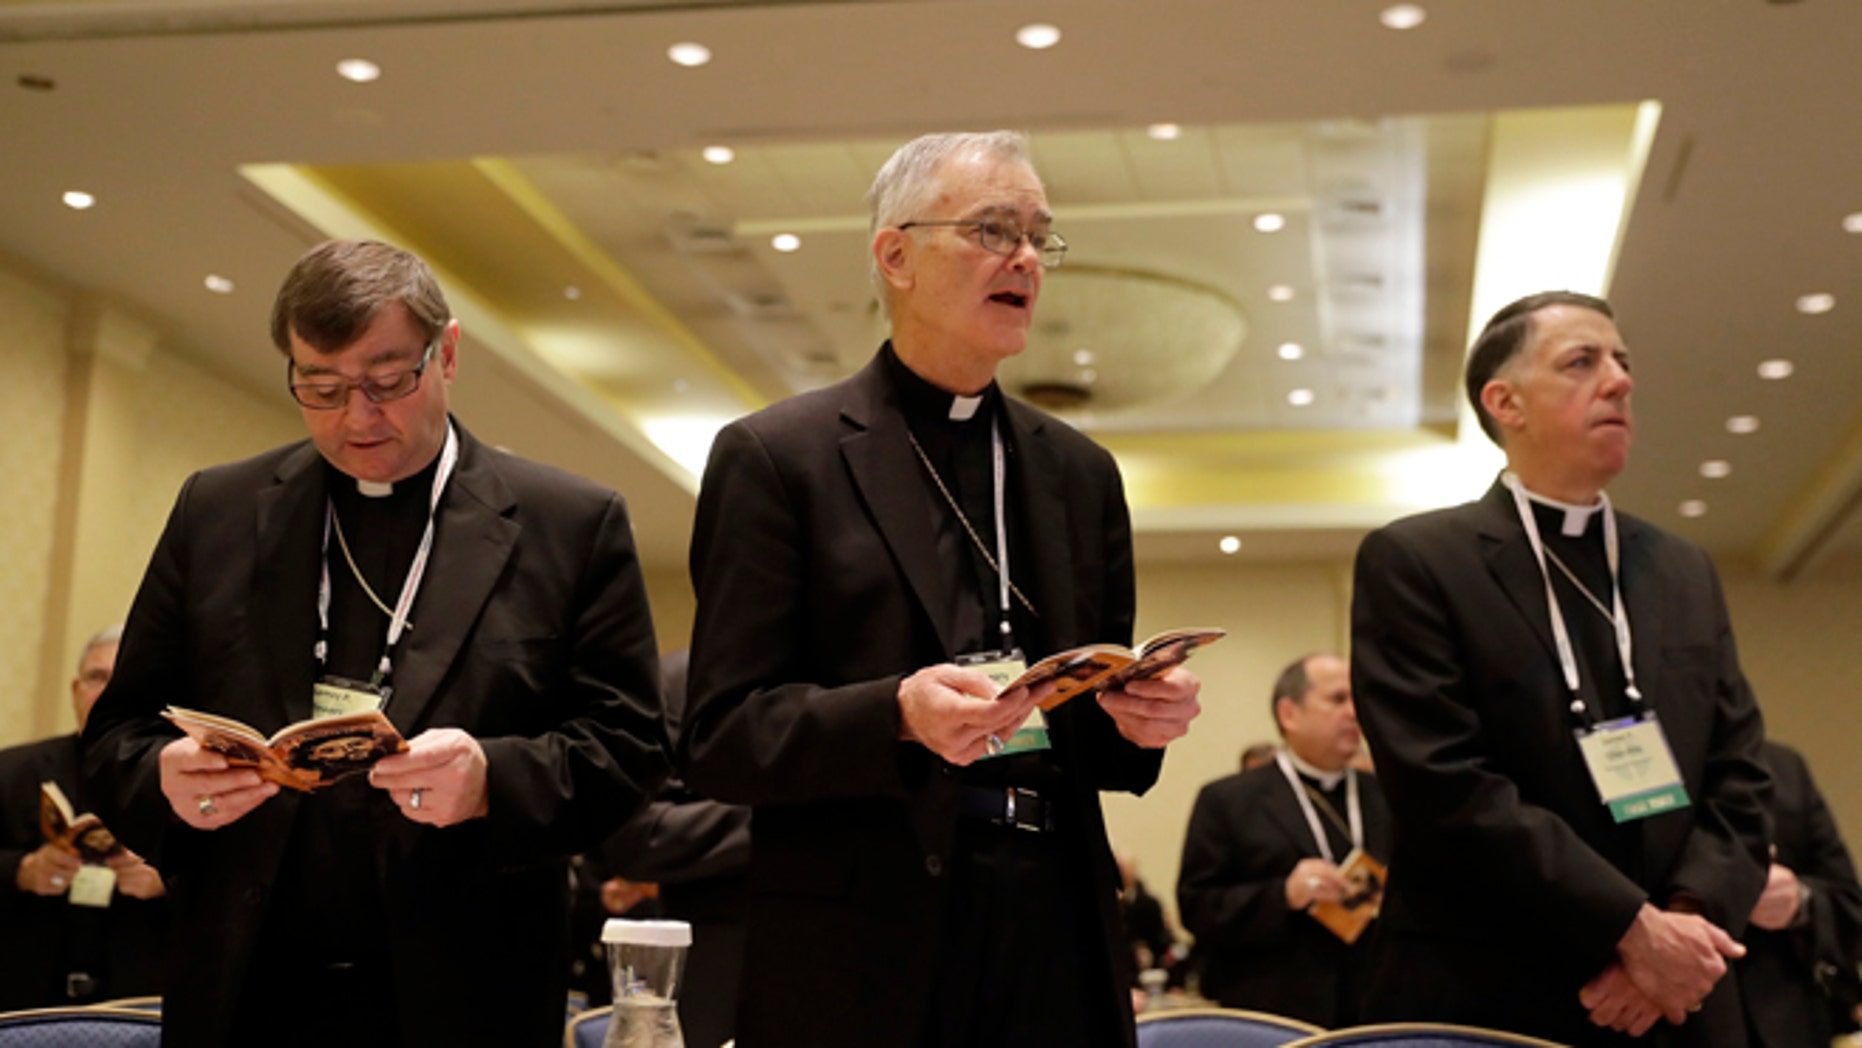 Bishop James Powers of the Diocese of Superior, Bishop J. Gregory Kelly, Apostolic Administrator of Dallas, and Bishop James Checchio of the Diocese of Metuchen.